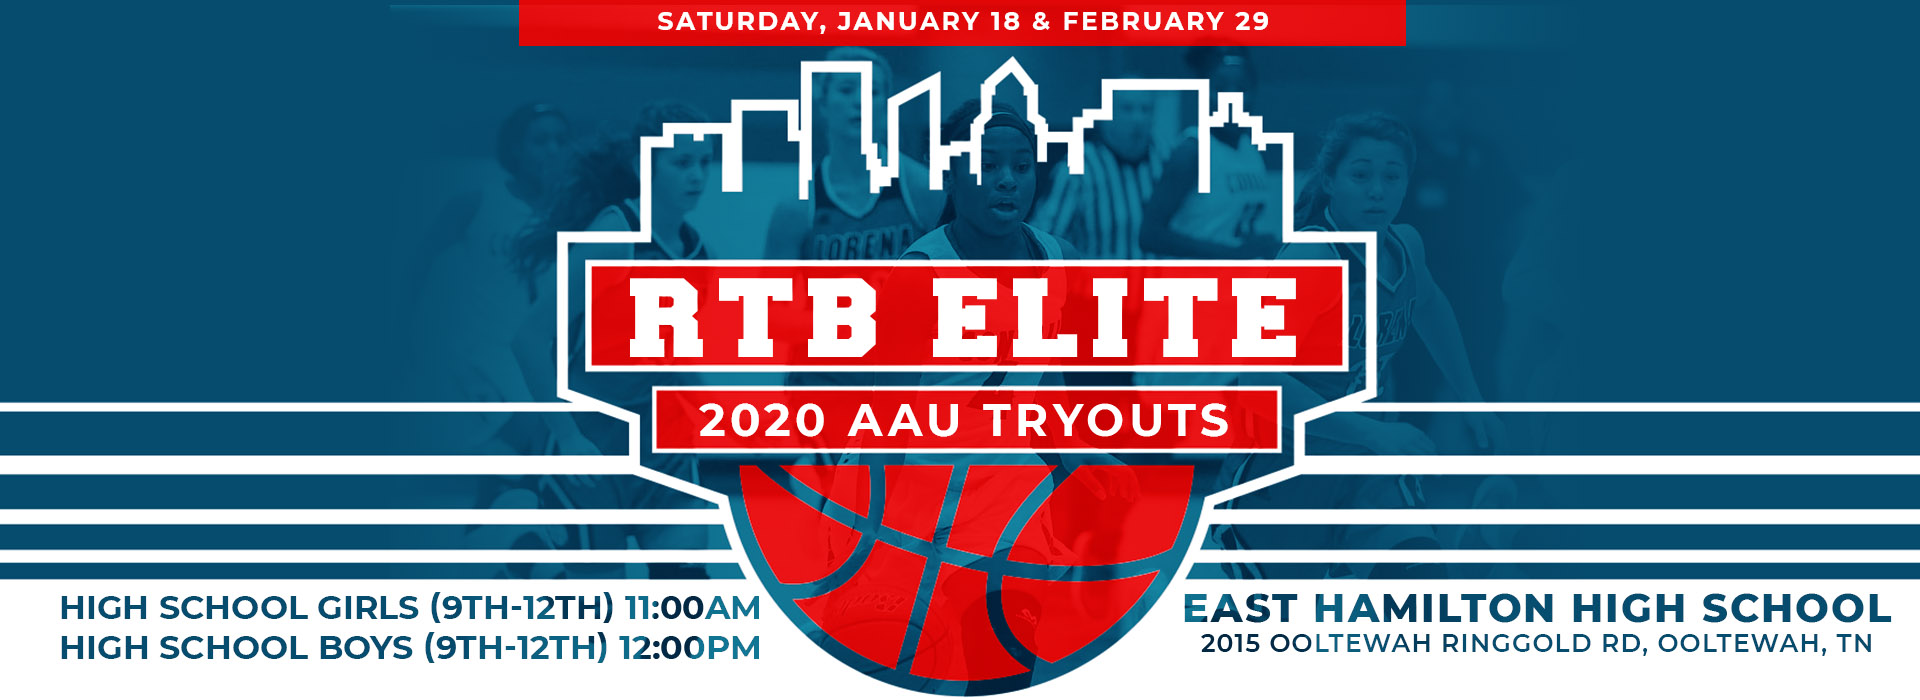 RTB_Elite_Tryouts_Banner_V2